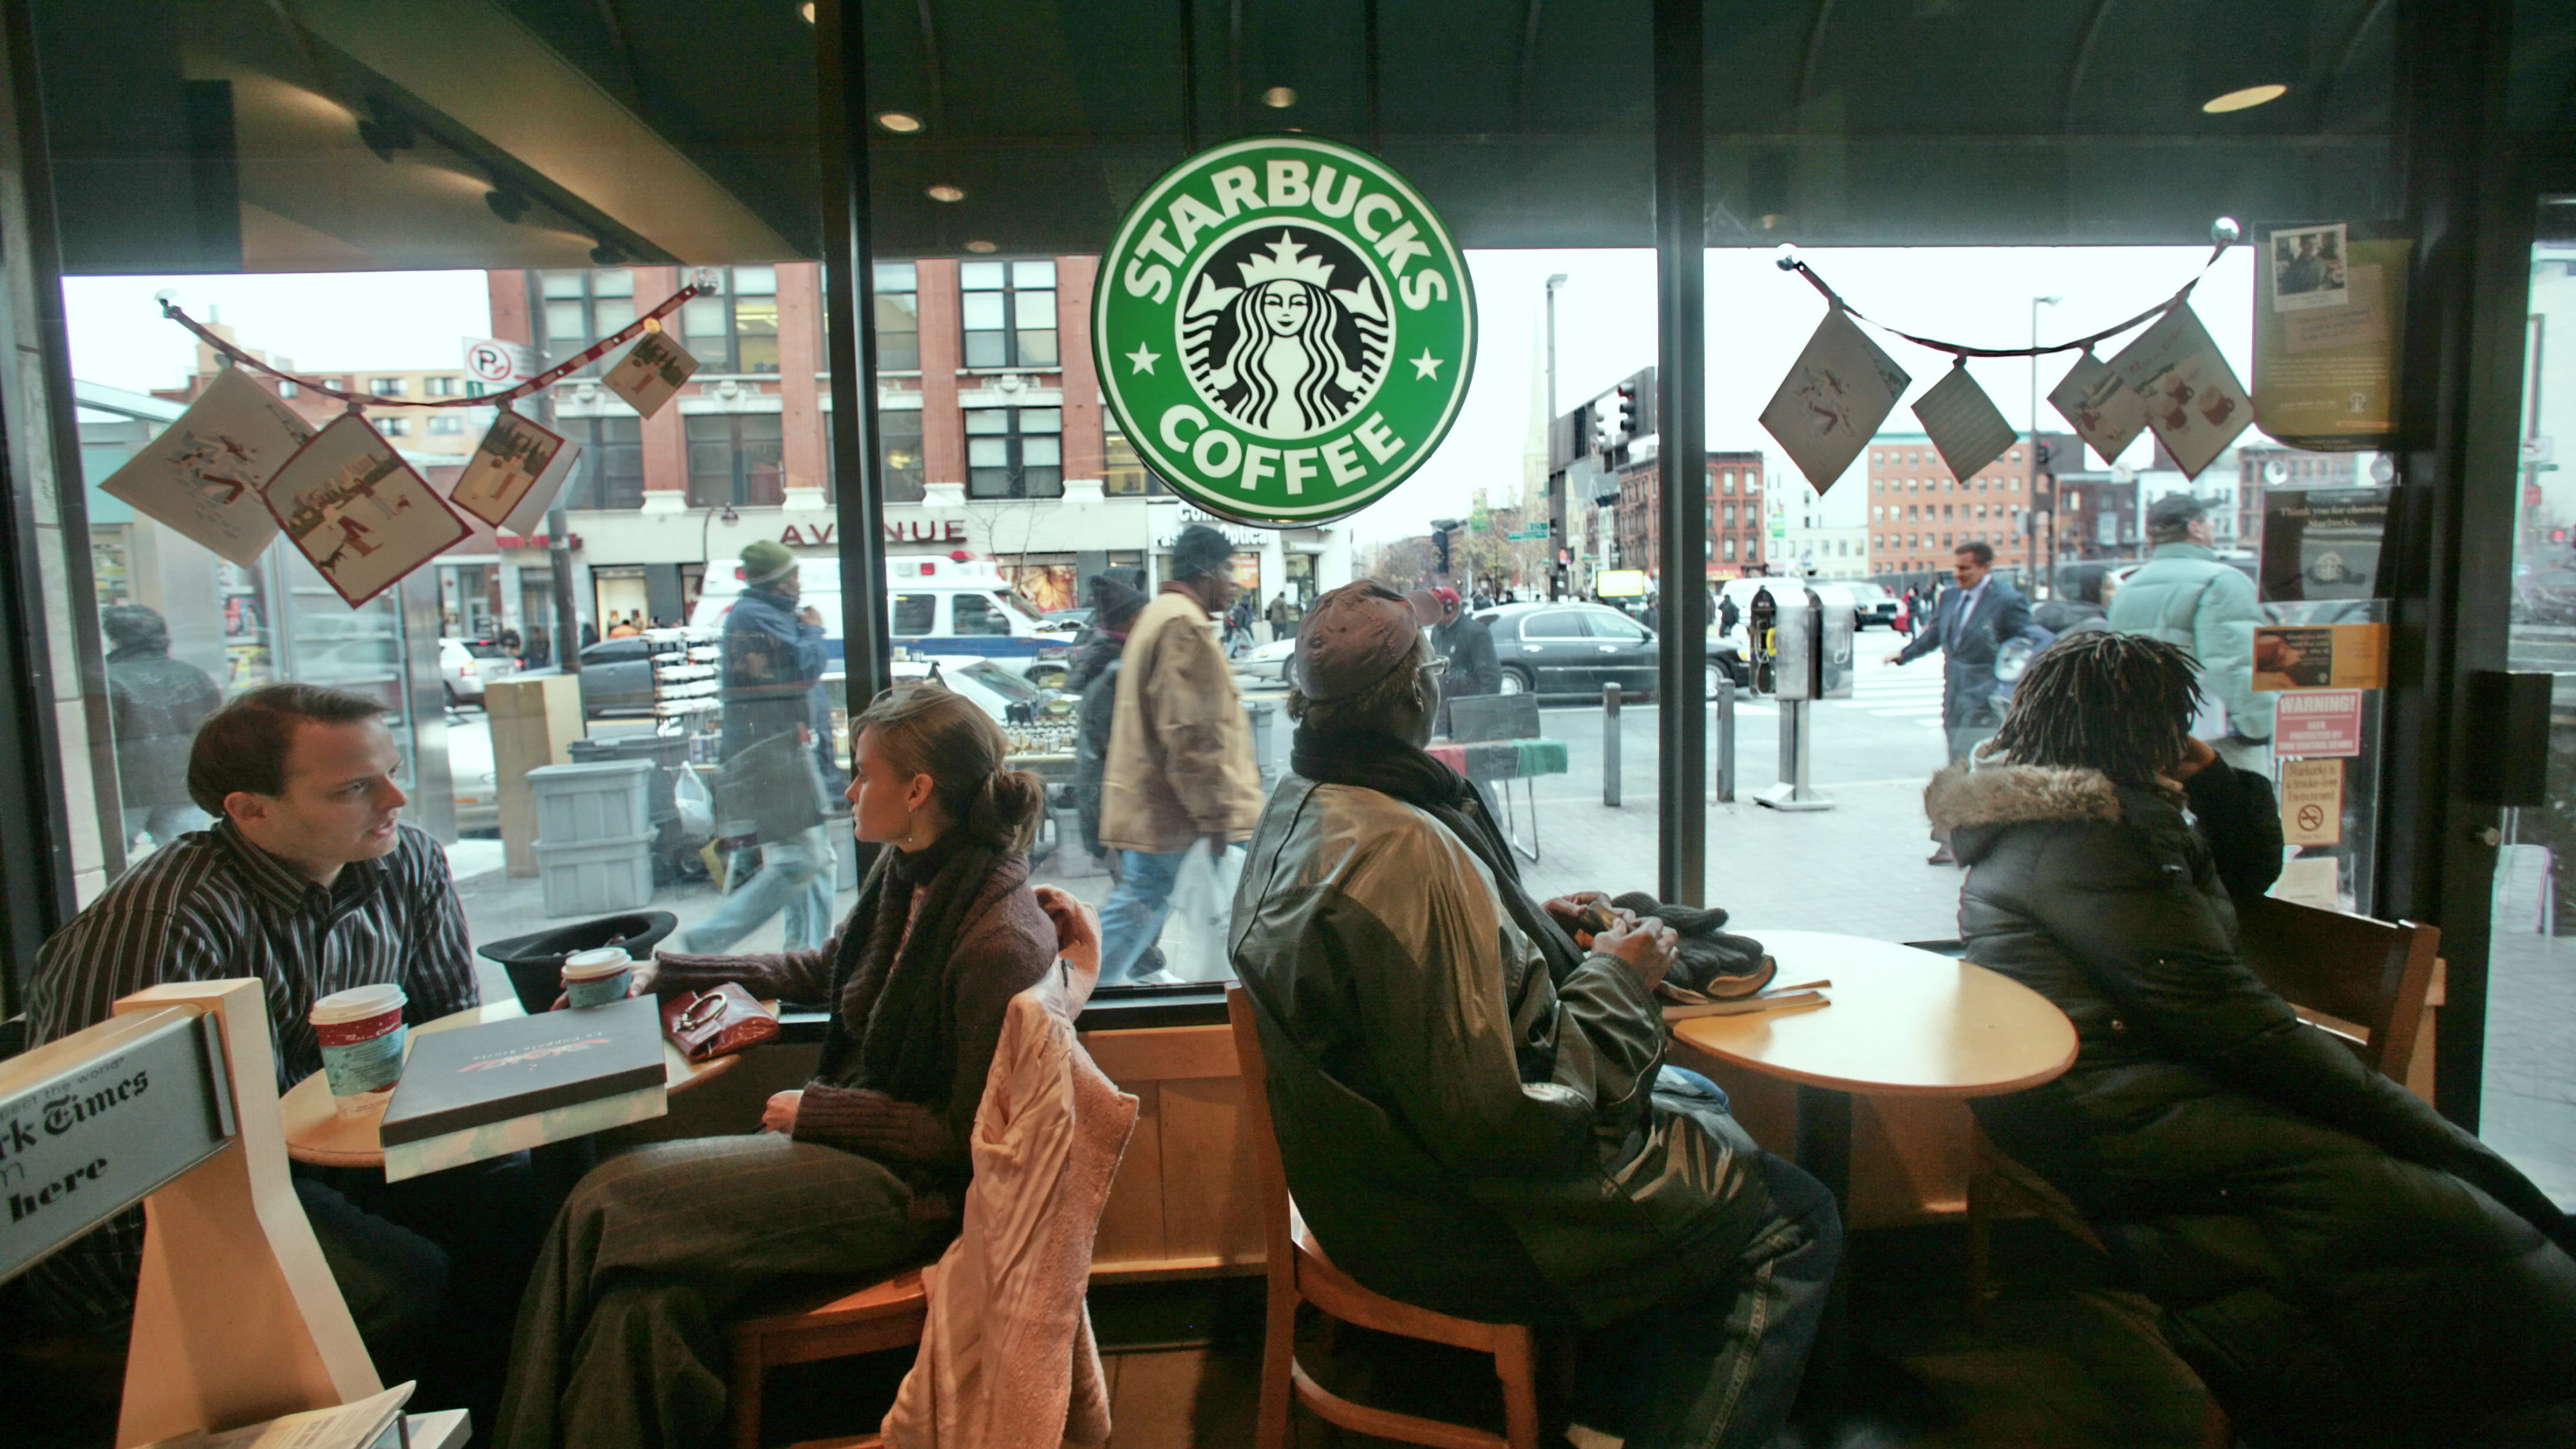 Patrons sit inside a Starbucks in the New York neighborhood of Harlem on Monday Dec. 10, 2007. Increasingly, Harlem's commercial and cultural backbone, 125th Street, has seen many of its black-owned businesses forced out by high rents and replaced by branches of national chain brands like Starbucks. Harlem is the historic capital of black American culture, but like many New York neighborhoods, it is rapidly changing and old-timers worry that redevelopment will wipe out mom-and-pop stores and affordable housing, along with the area's distinct character.